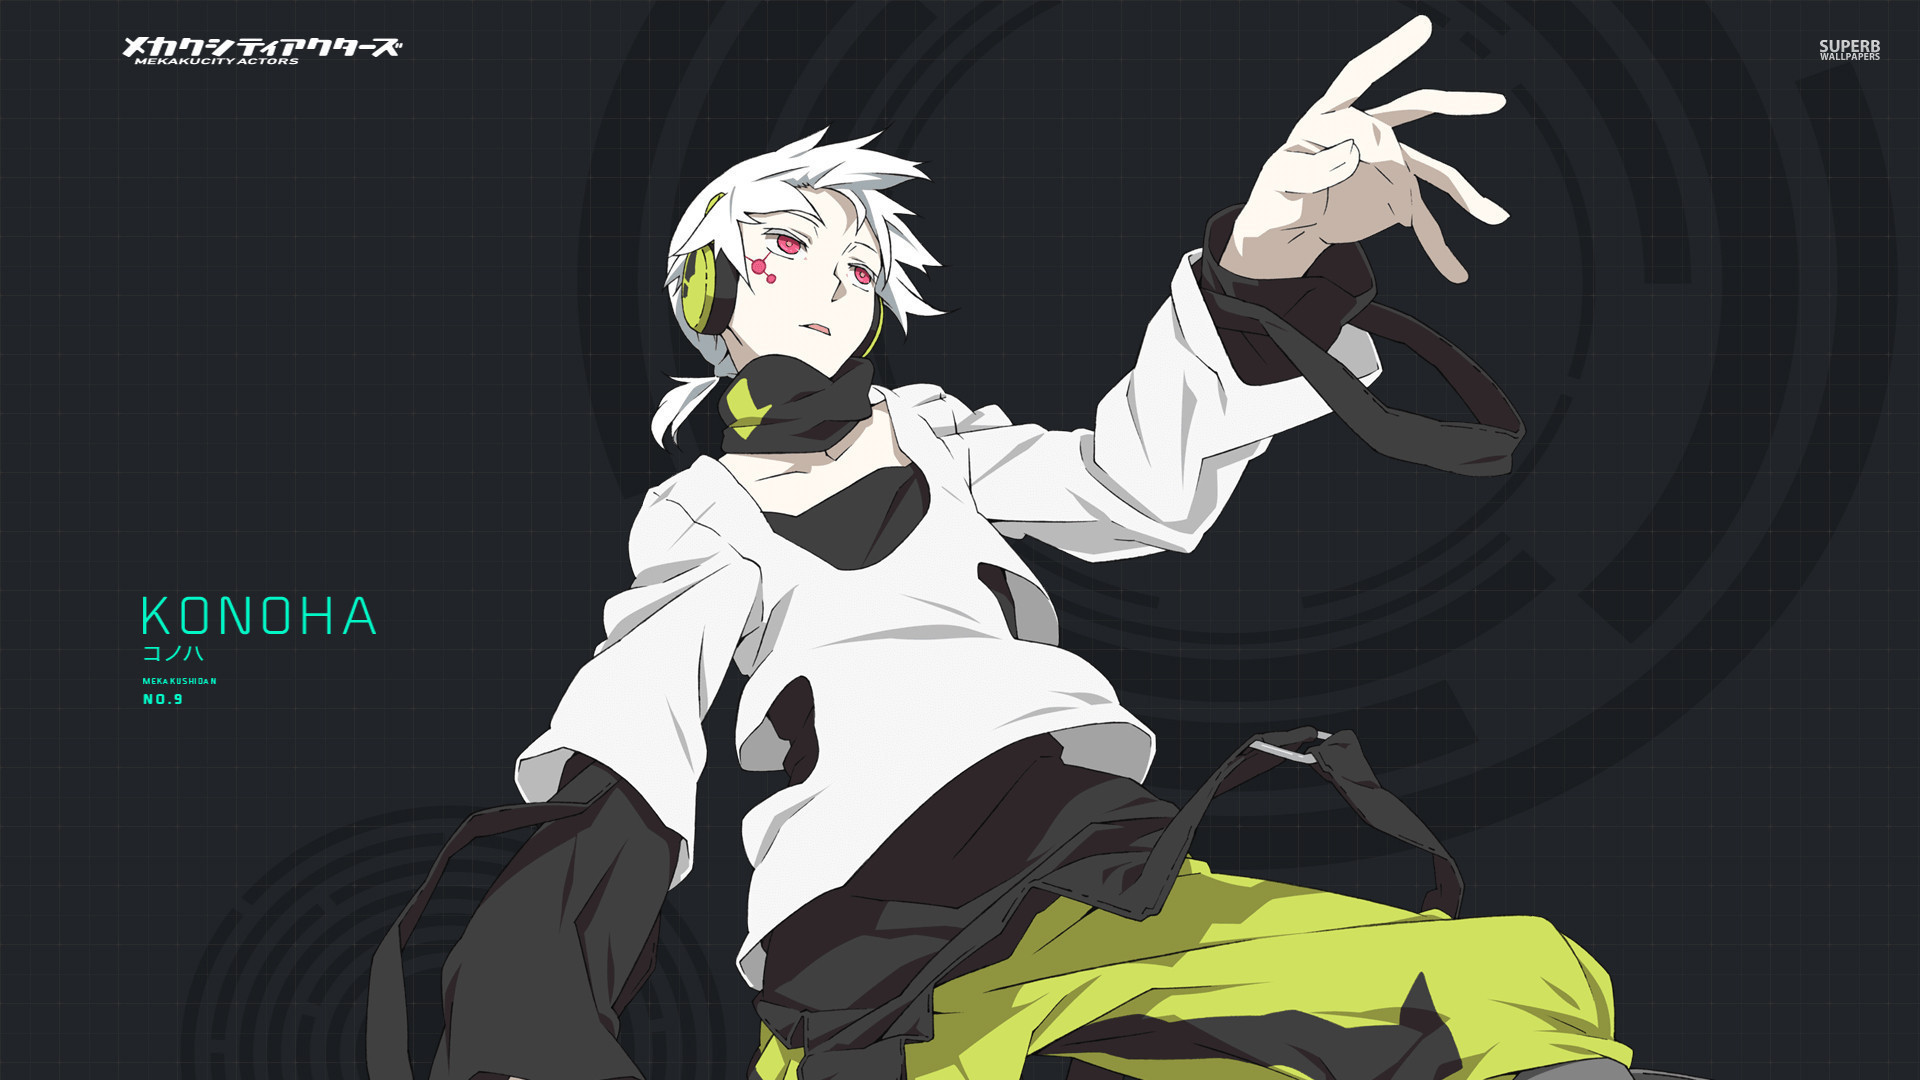 Res: 1920x1080, Tags: Anime, Kagerou Project, Wallpaper, HD Wallpaper, The Story Of The